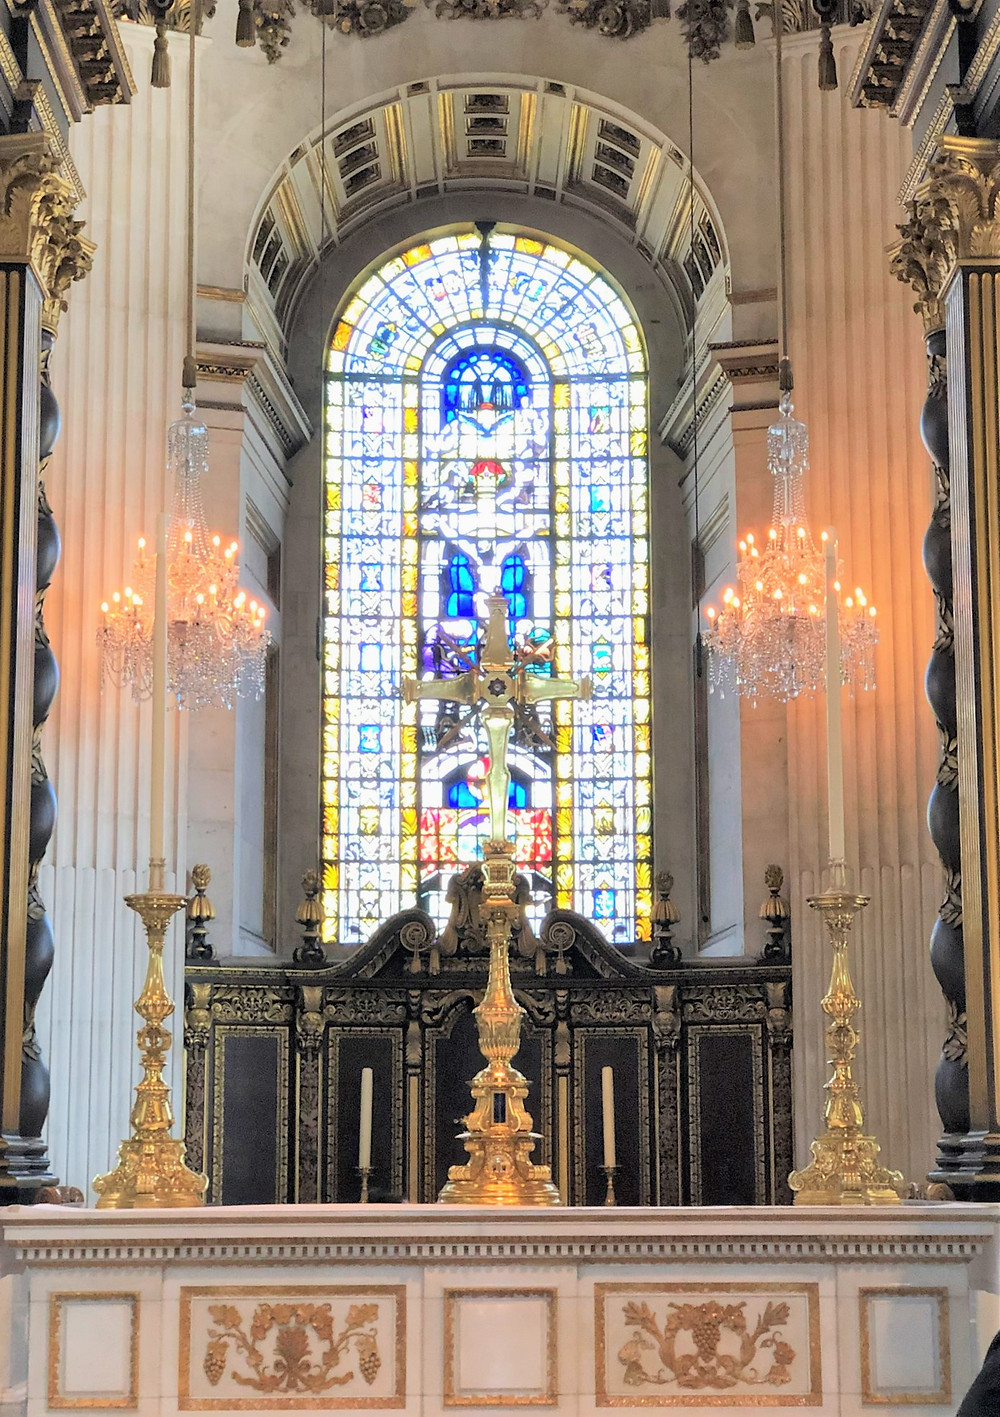 On the high altar in St Paul's Cathedral is a large cross that stands nearly 10 ft tall with a silver enameled base embellished with amethyst.